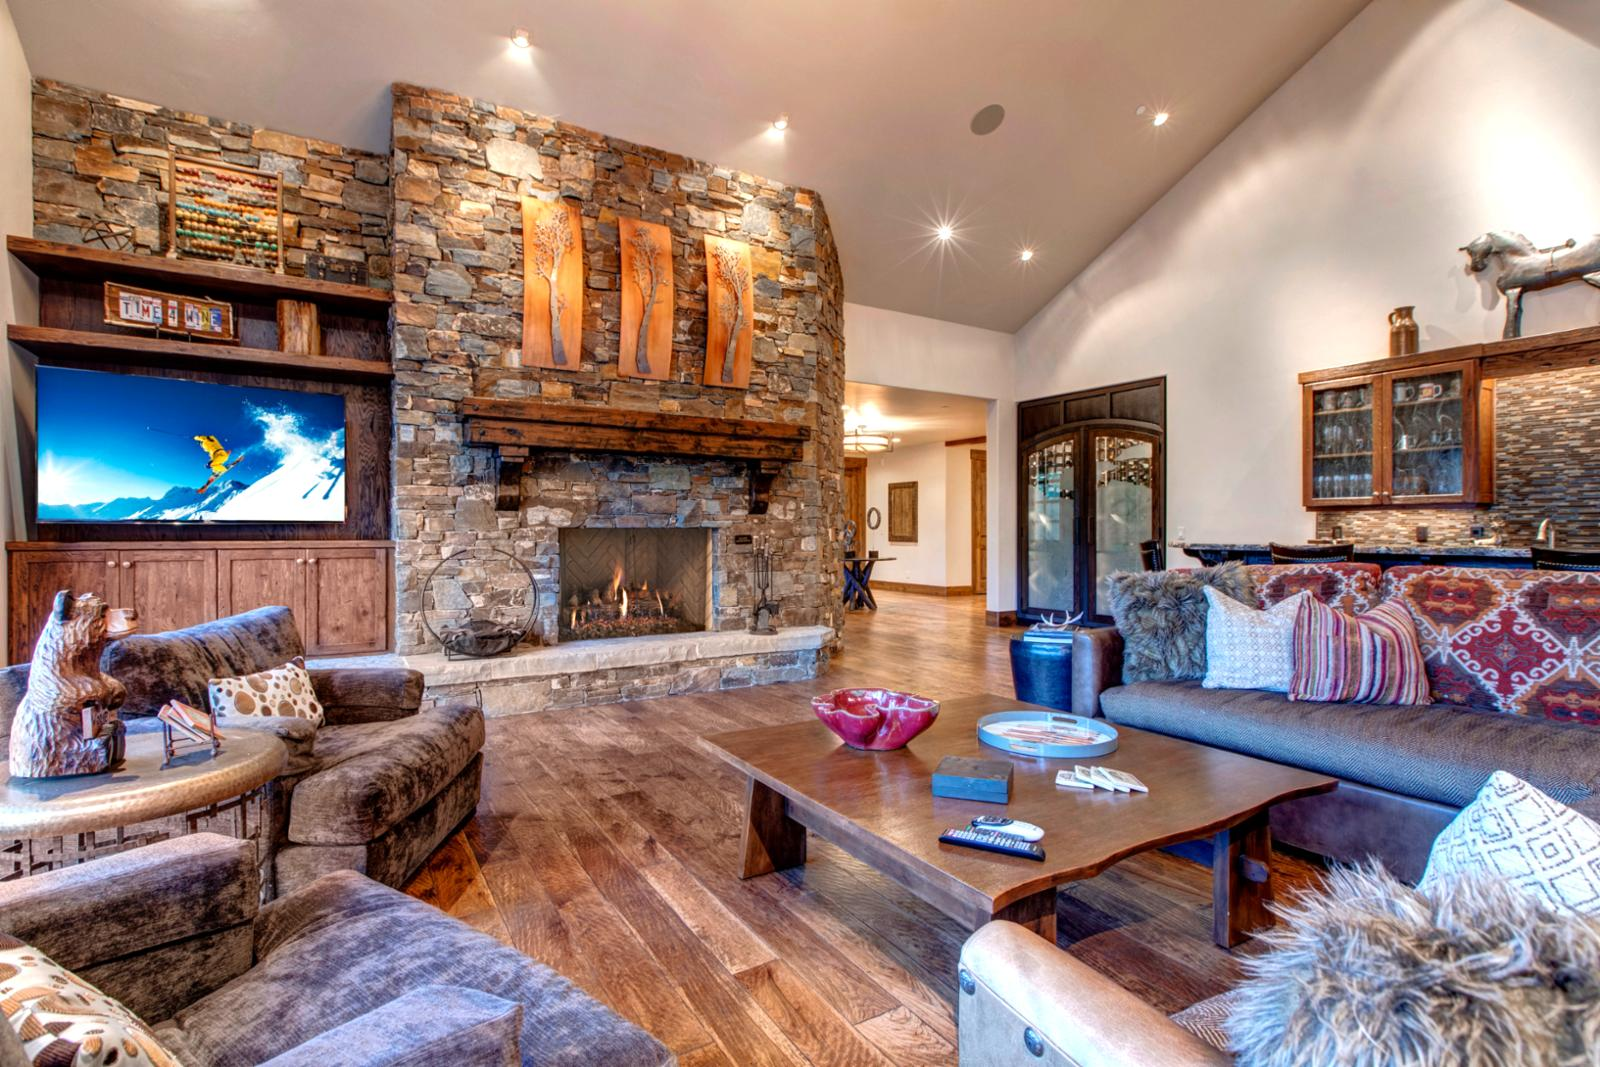 Cozy up to the crackling fire and take time to watch your favorite shows together